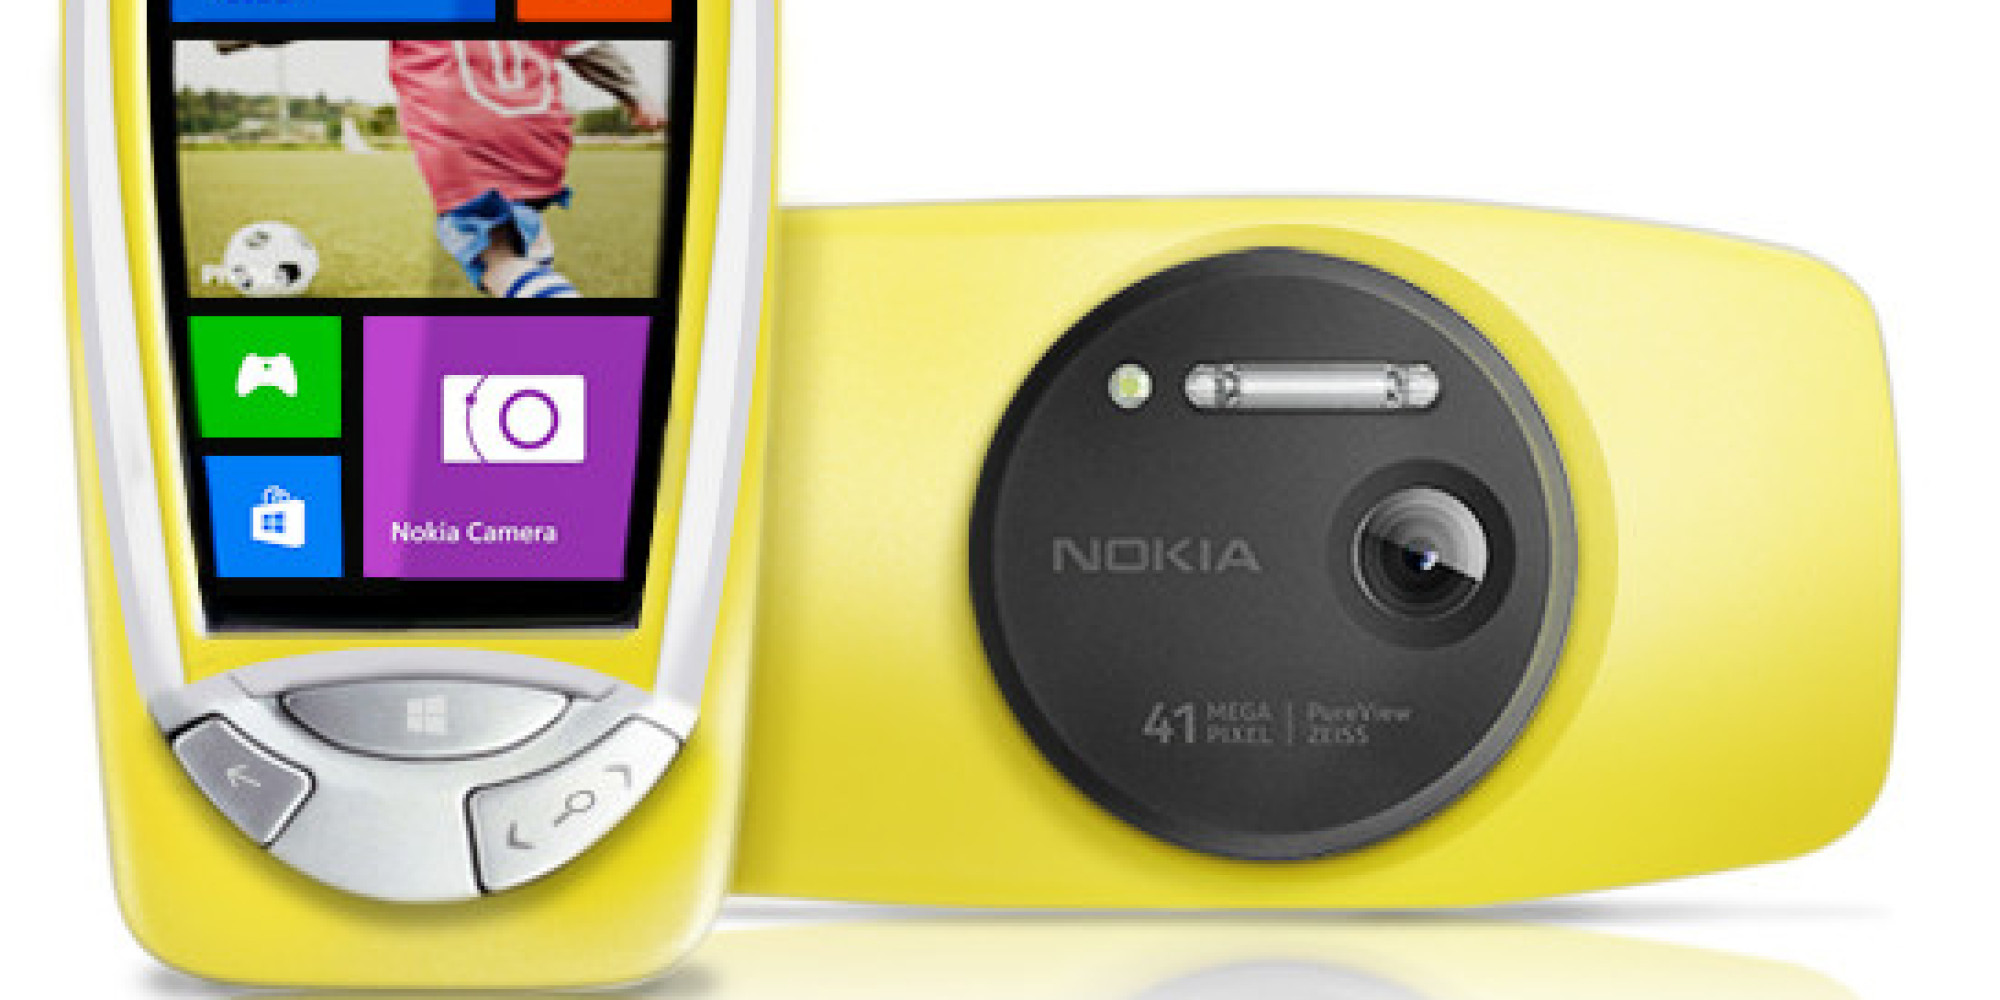 Let's take a look once again at the new Nokia 3310